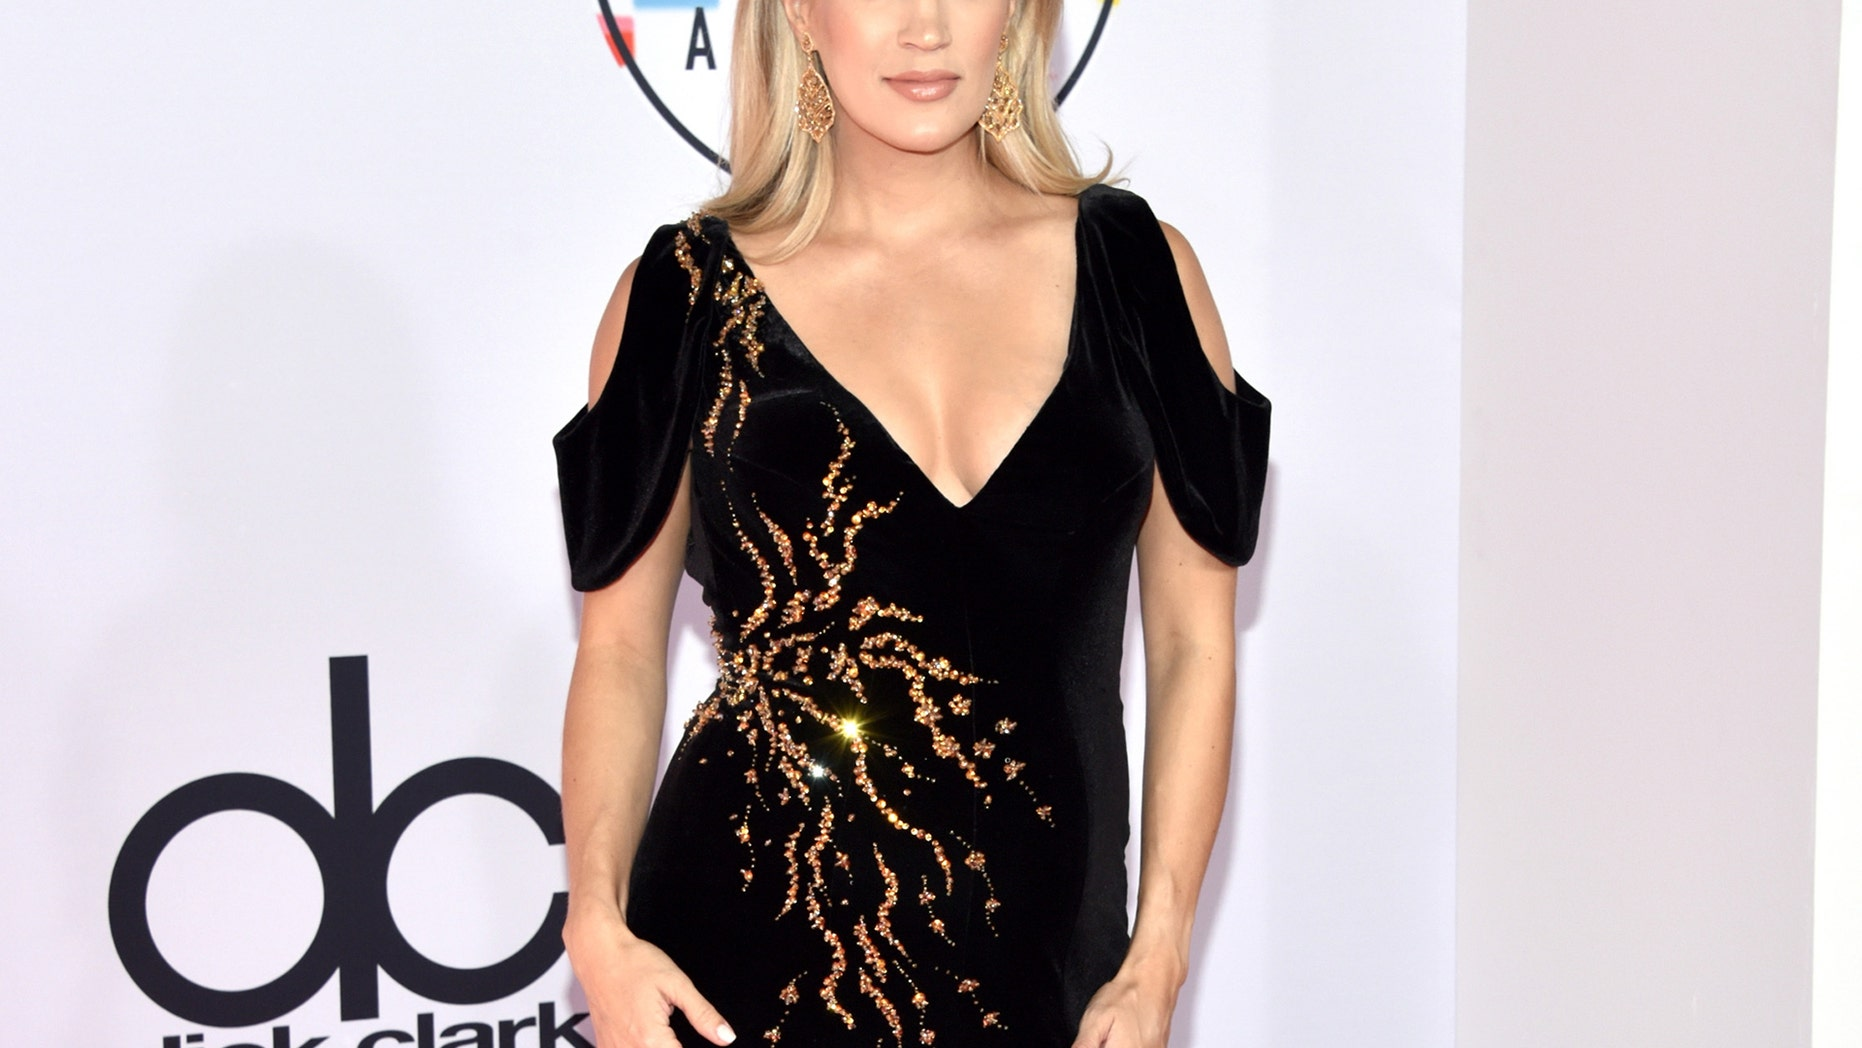 Carrie Underwood Cradles Baby Bump on the Red Carpet for 2018 AMA's